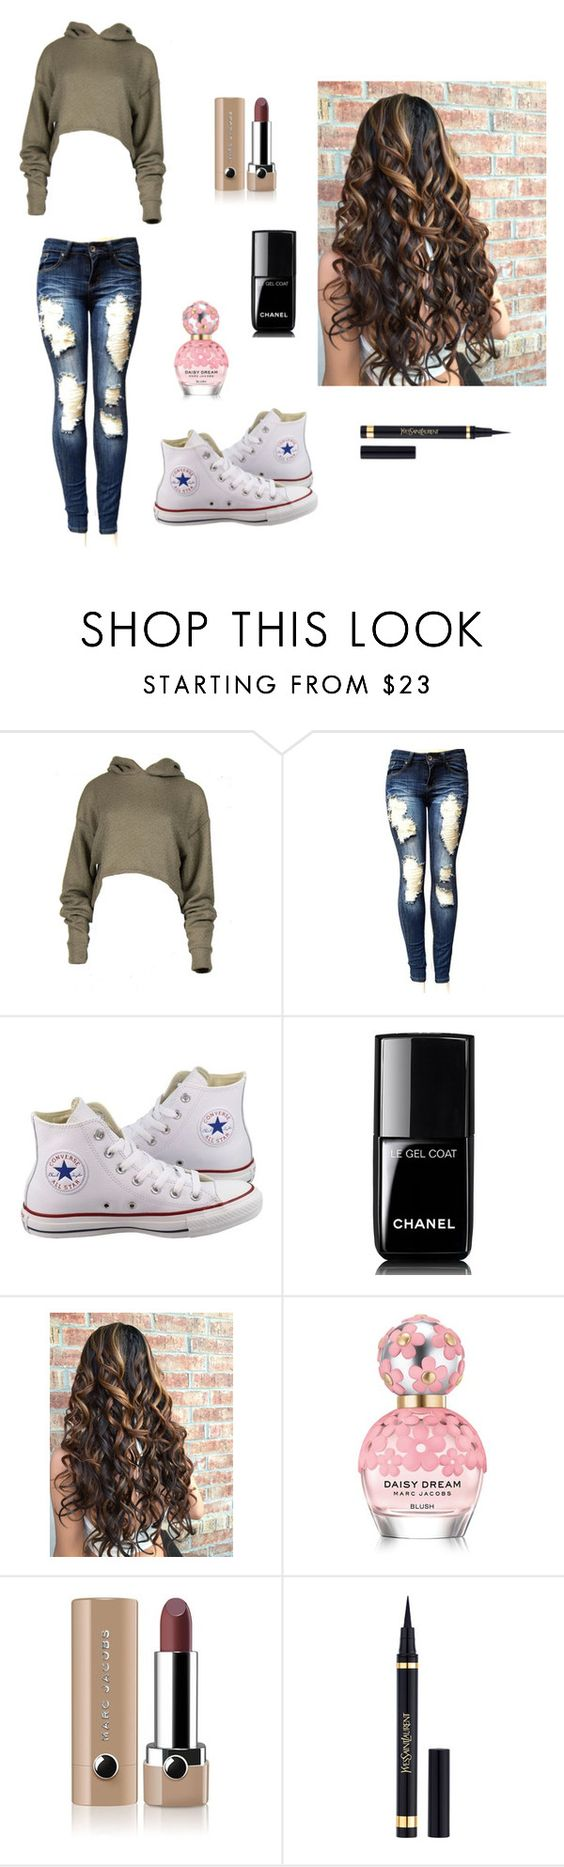 """""""Weekend with friends"""" by kiana-champ ❤ liked on Polyvore featuring Converse, Chanel, Marc Jacobs and Yves Saint Laurent"""